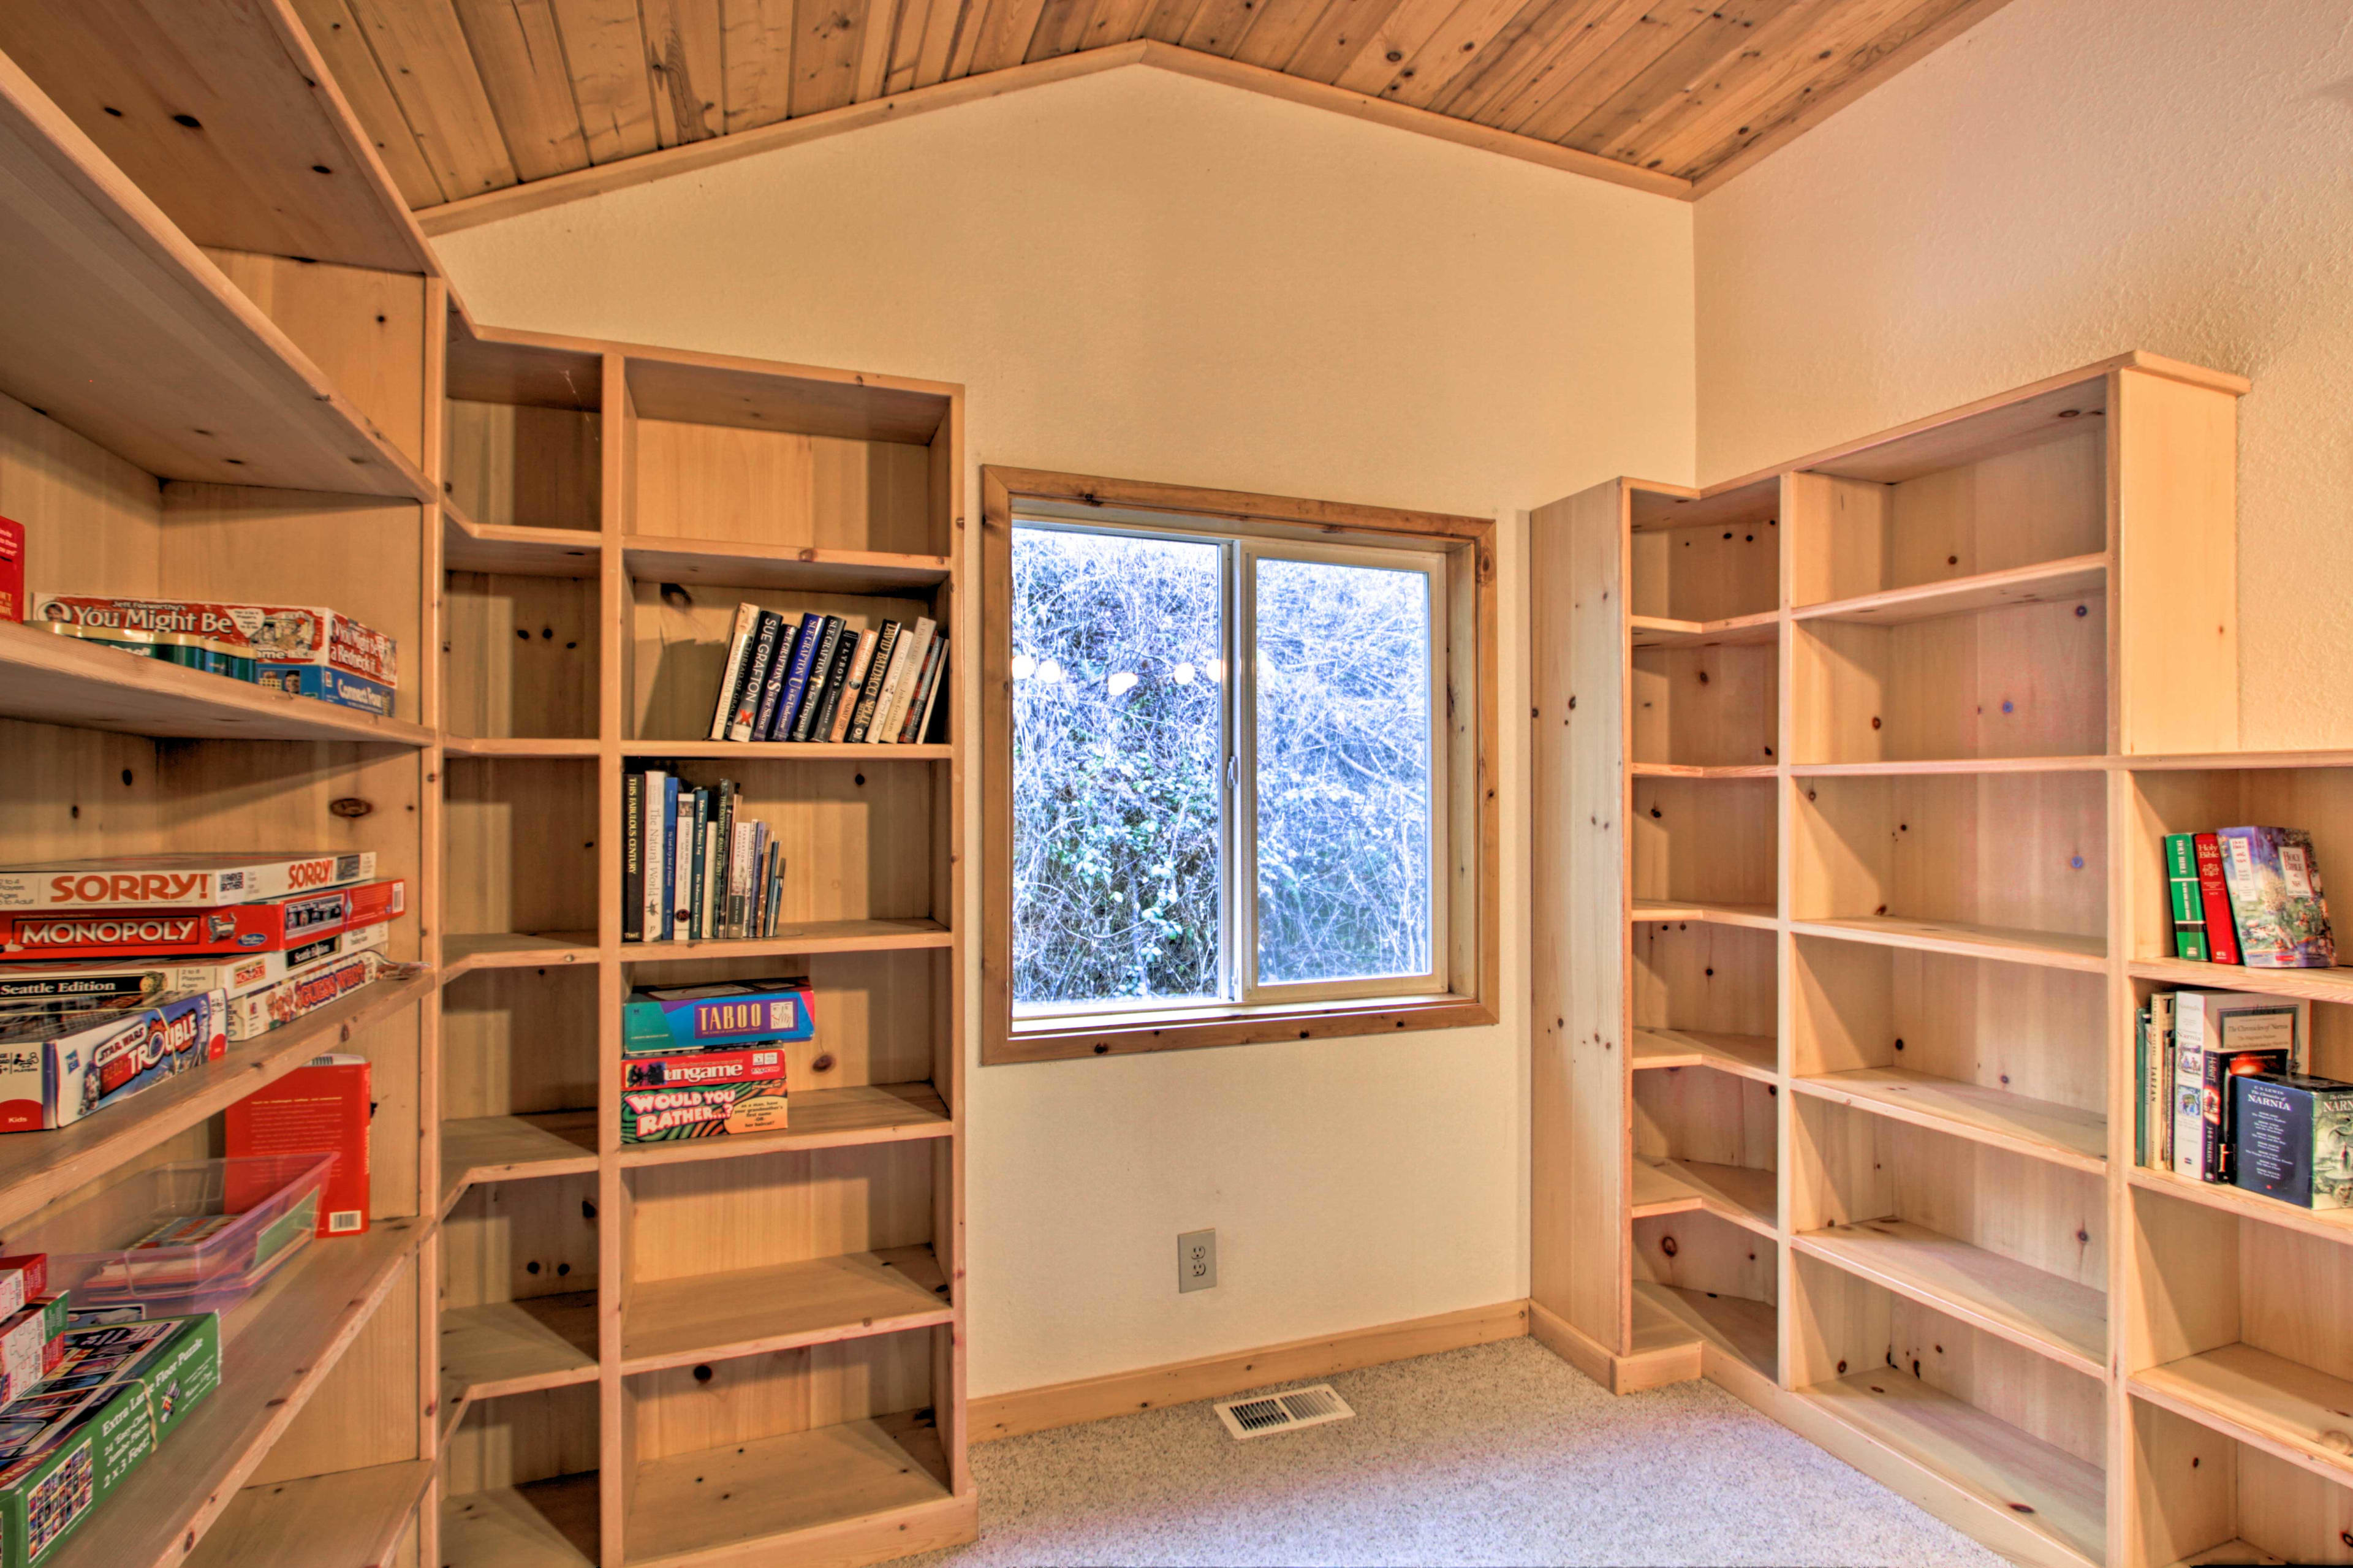 Play some of the provided board games, or curl up to read one of the books!